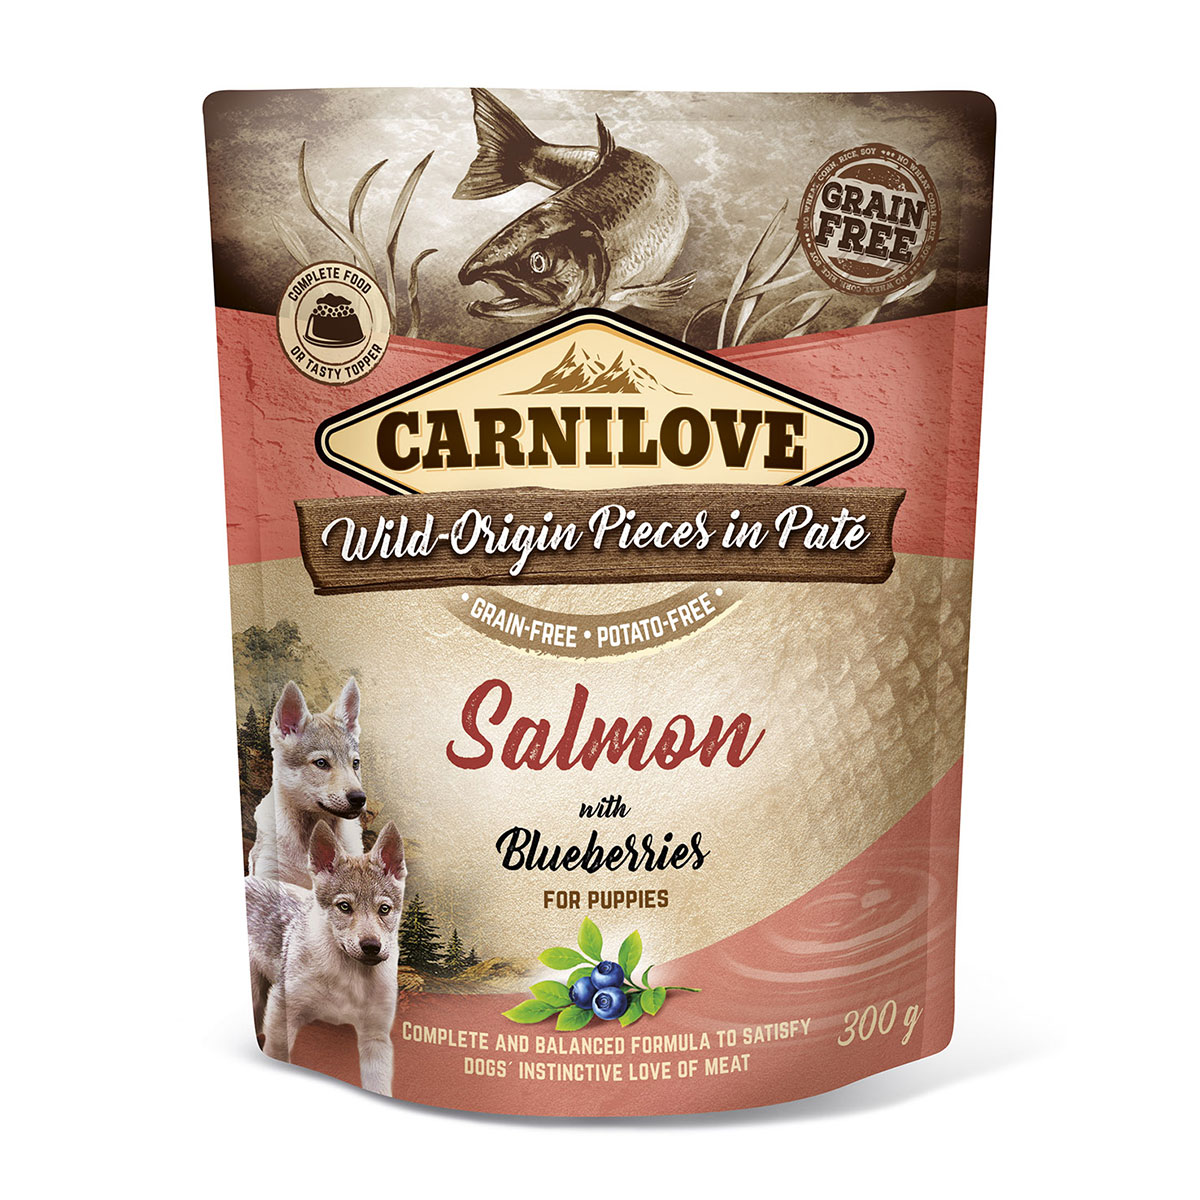 Carnilove Dog Pouch Paté Salmon with Blueberries for Puppies 300g 10 + 2 ZDARMA